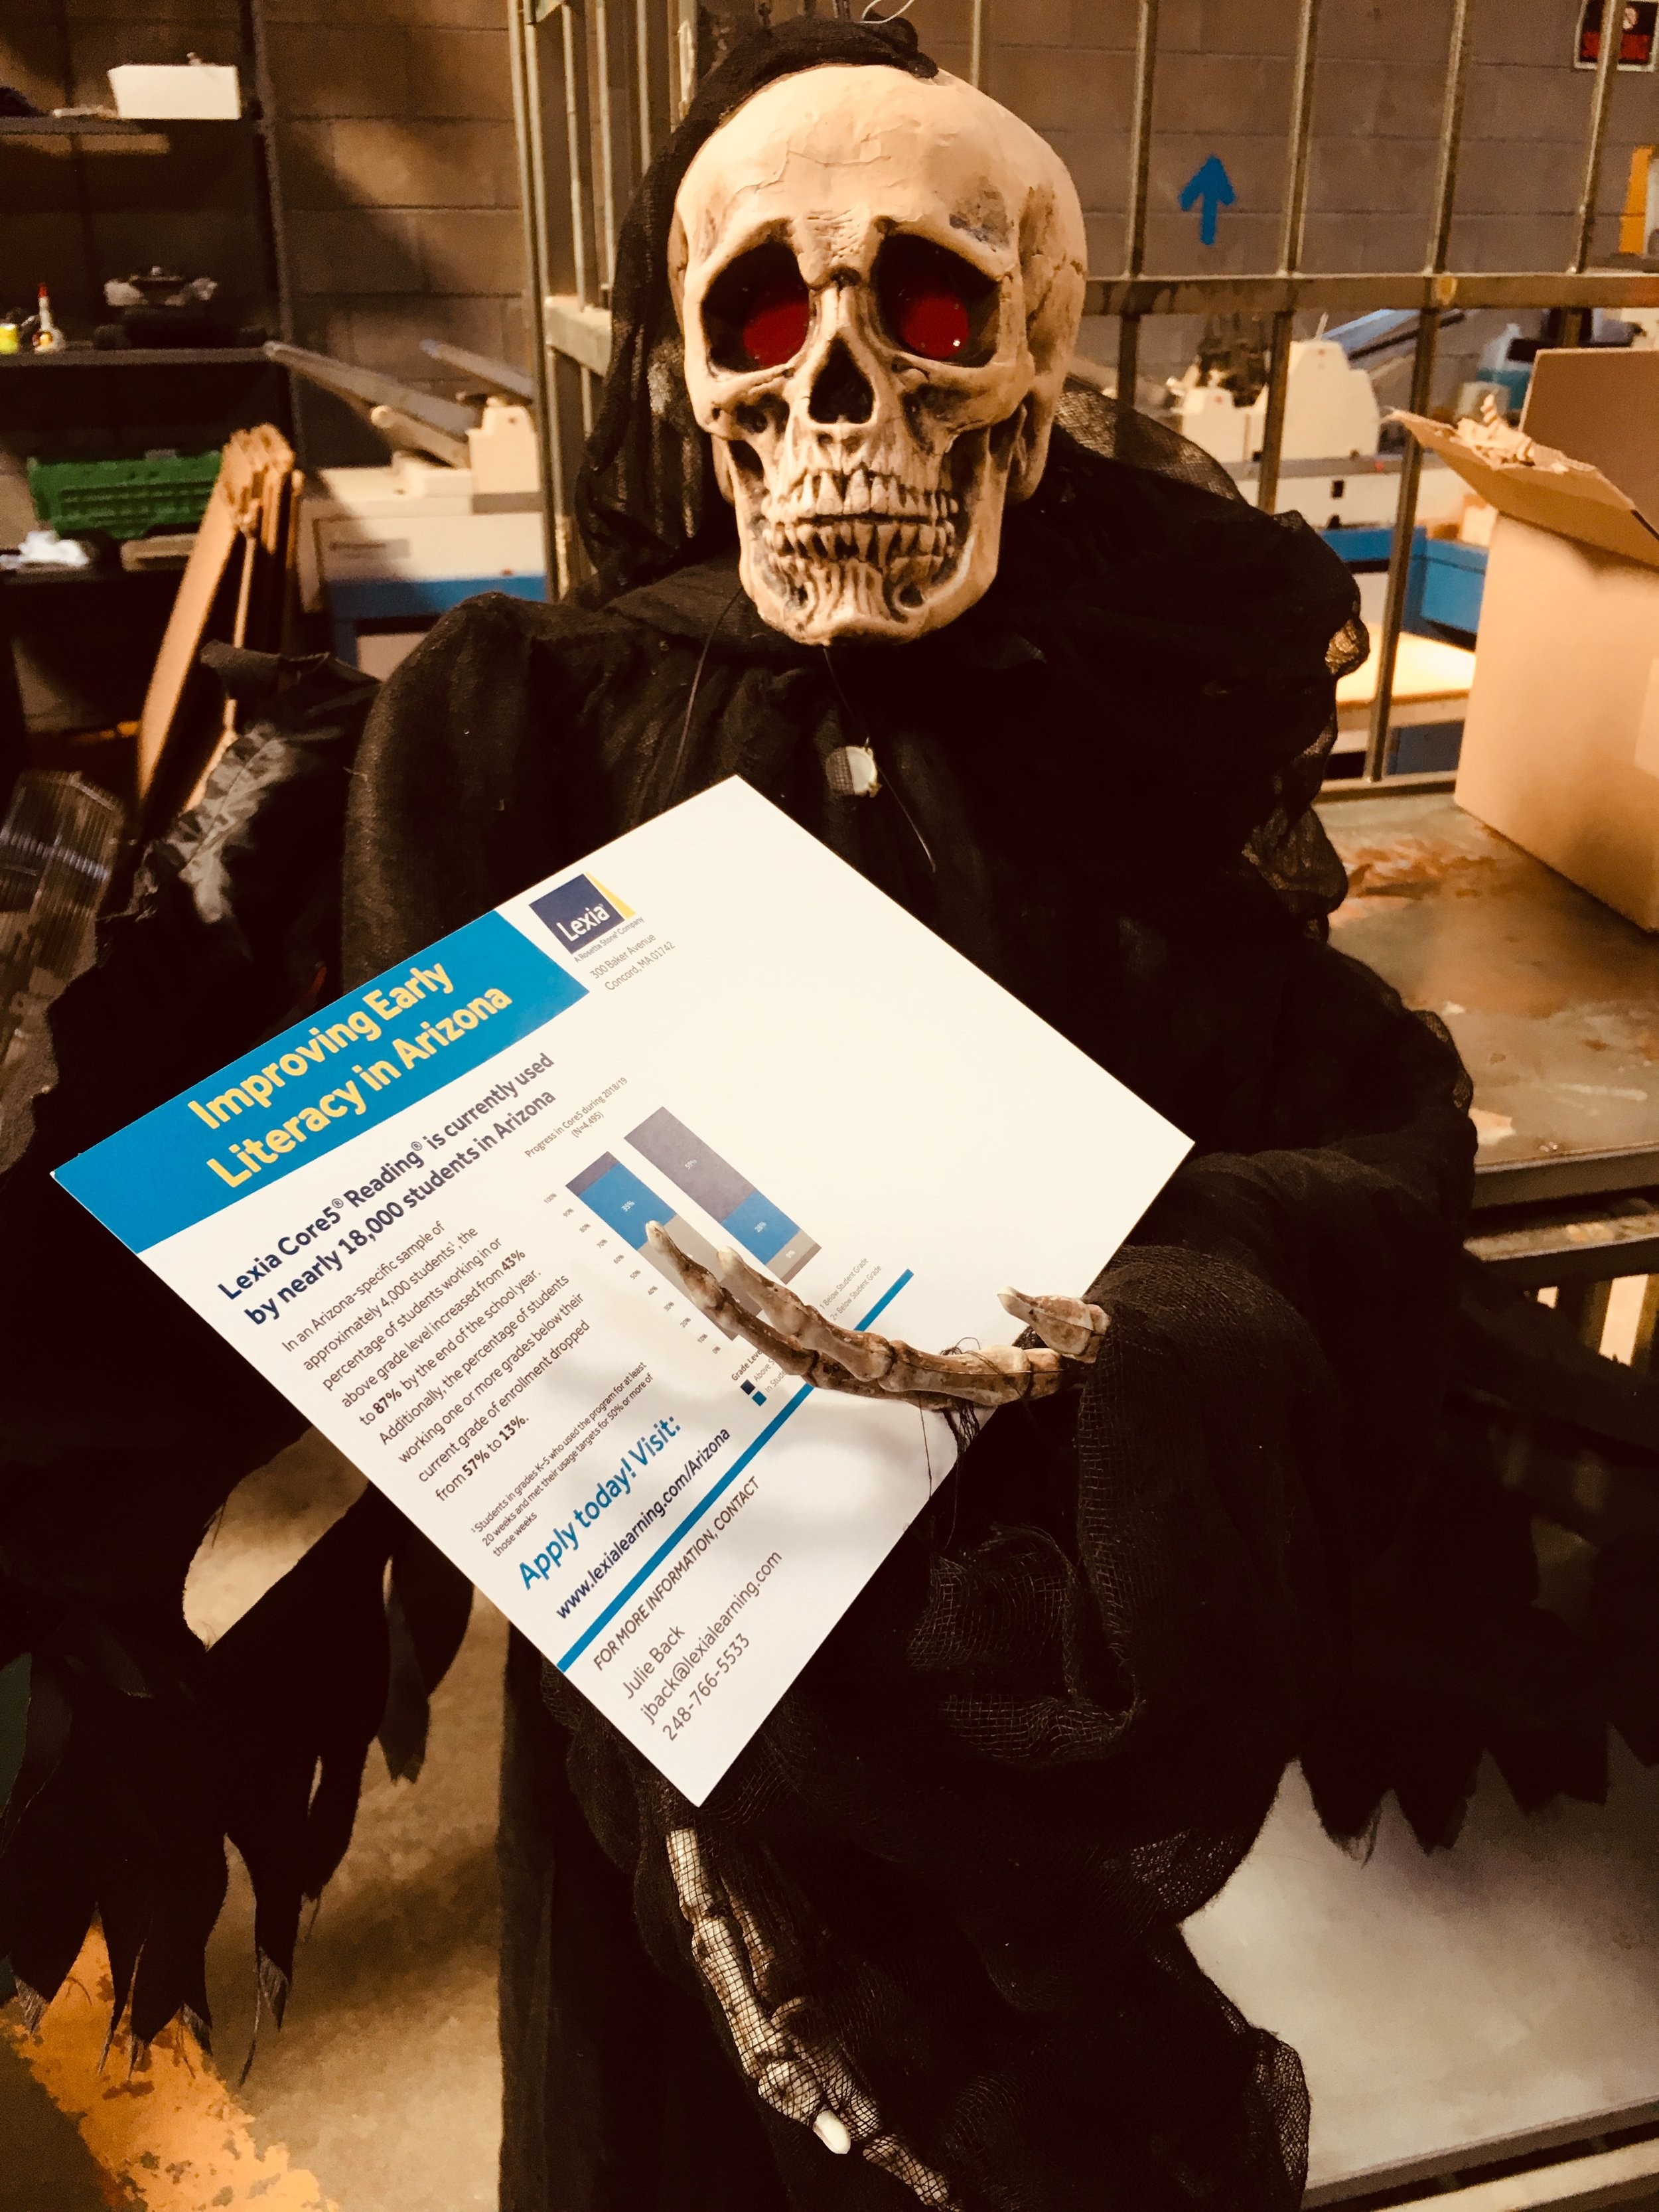 Direct Mail Marketing In Boston, MA! Getting Spooky In September!